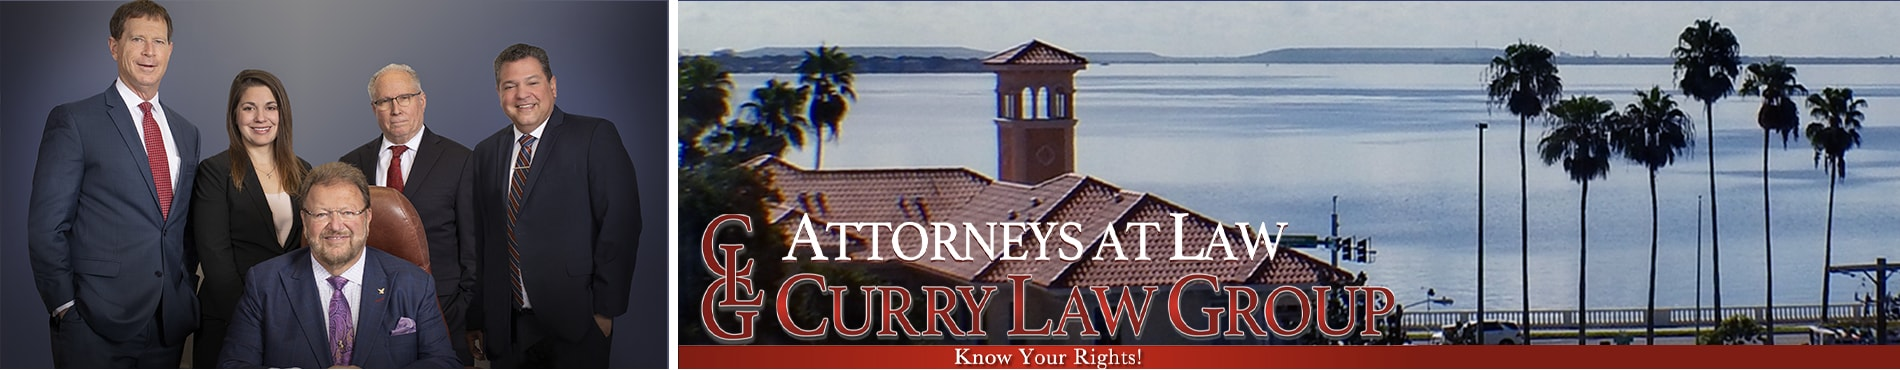 Curry Law Group South Tampa